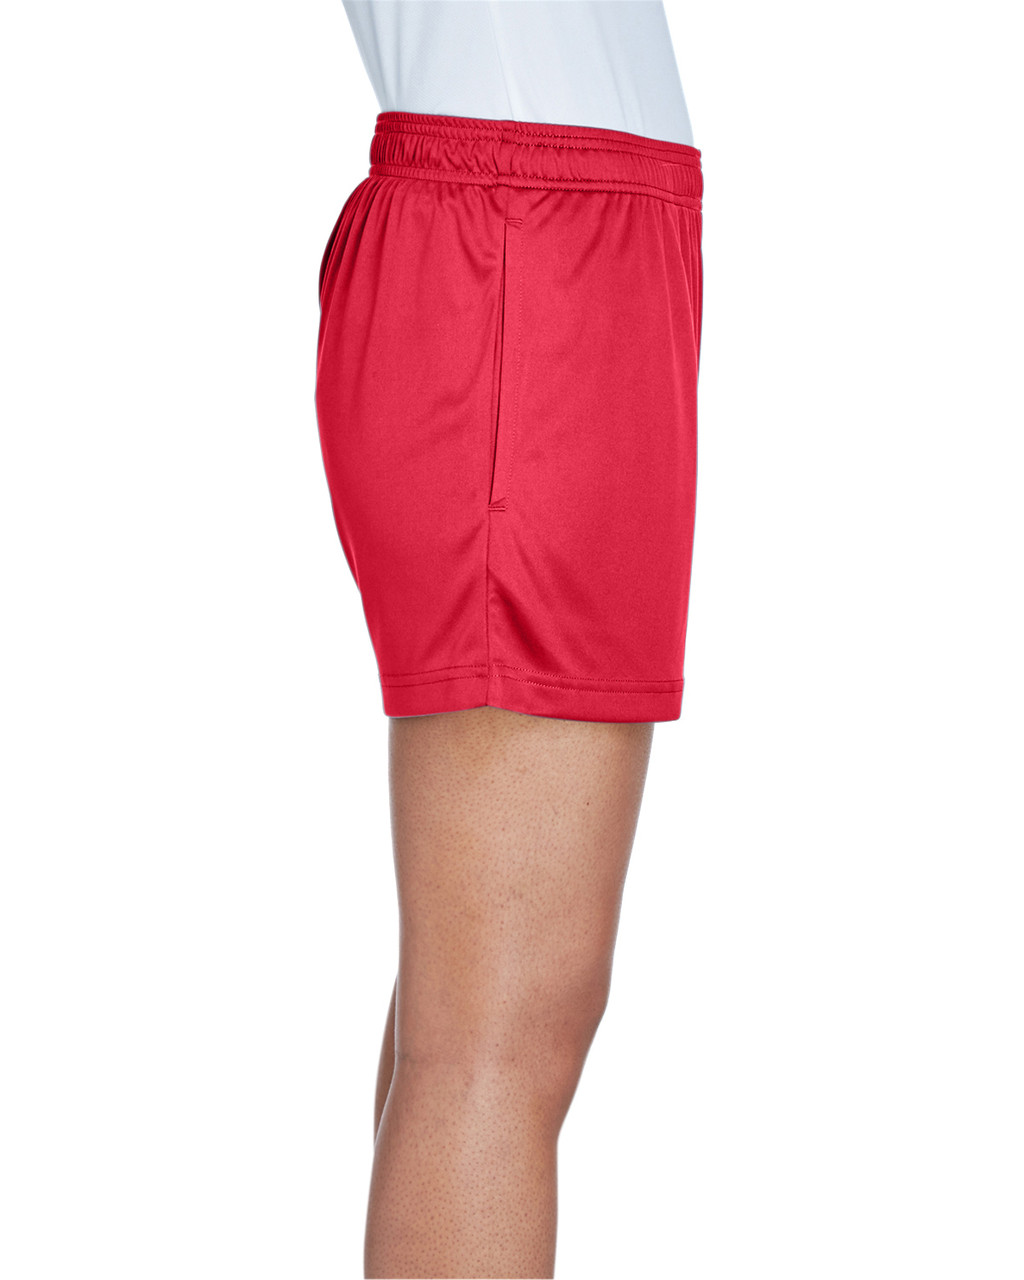 Sport Red - Side, TT11SHW Team 365 Ladies' Zone Performance Short | T-shirt.ca